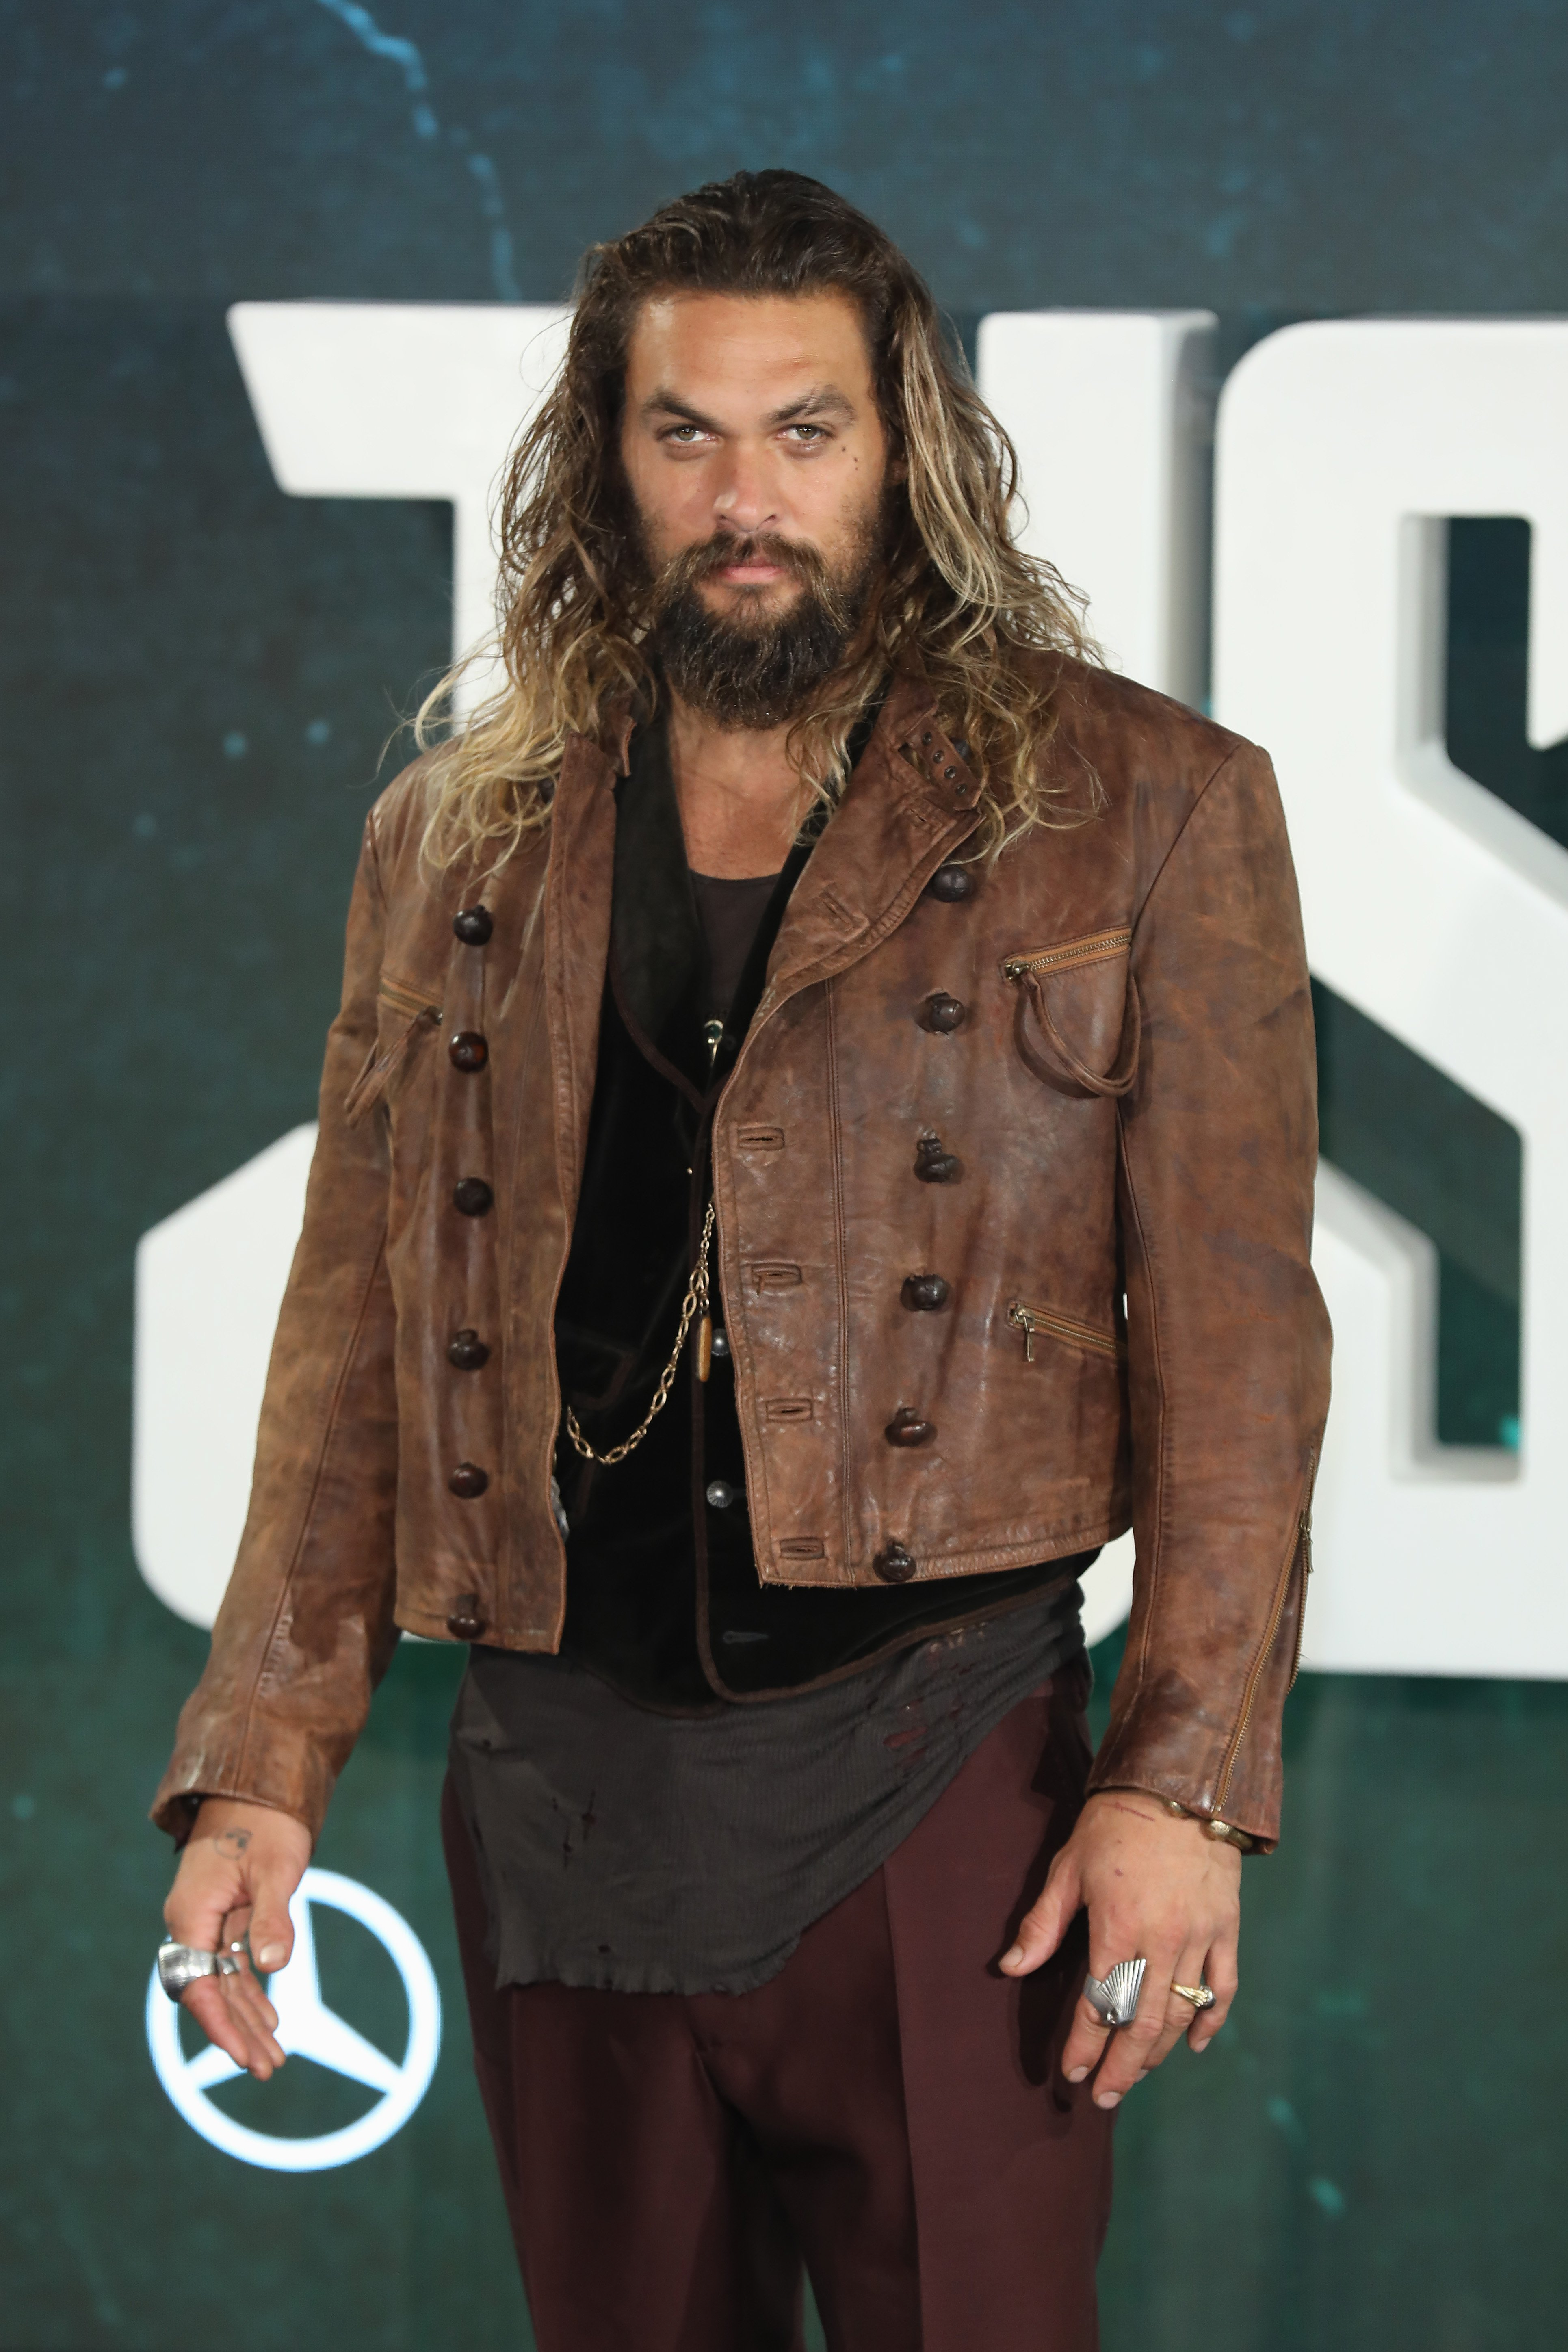 """Jason Momoa attends the photocall for """"Justice League"""" in London, England on November 4, 2017 